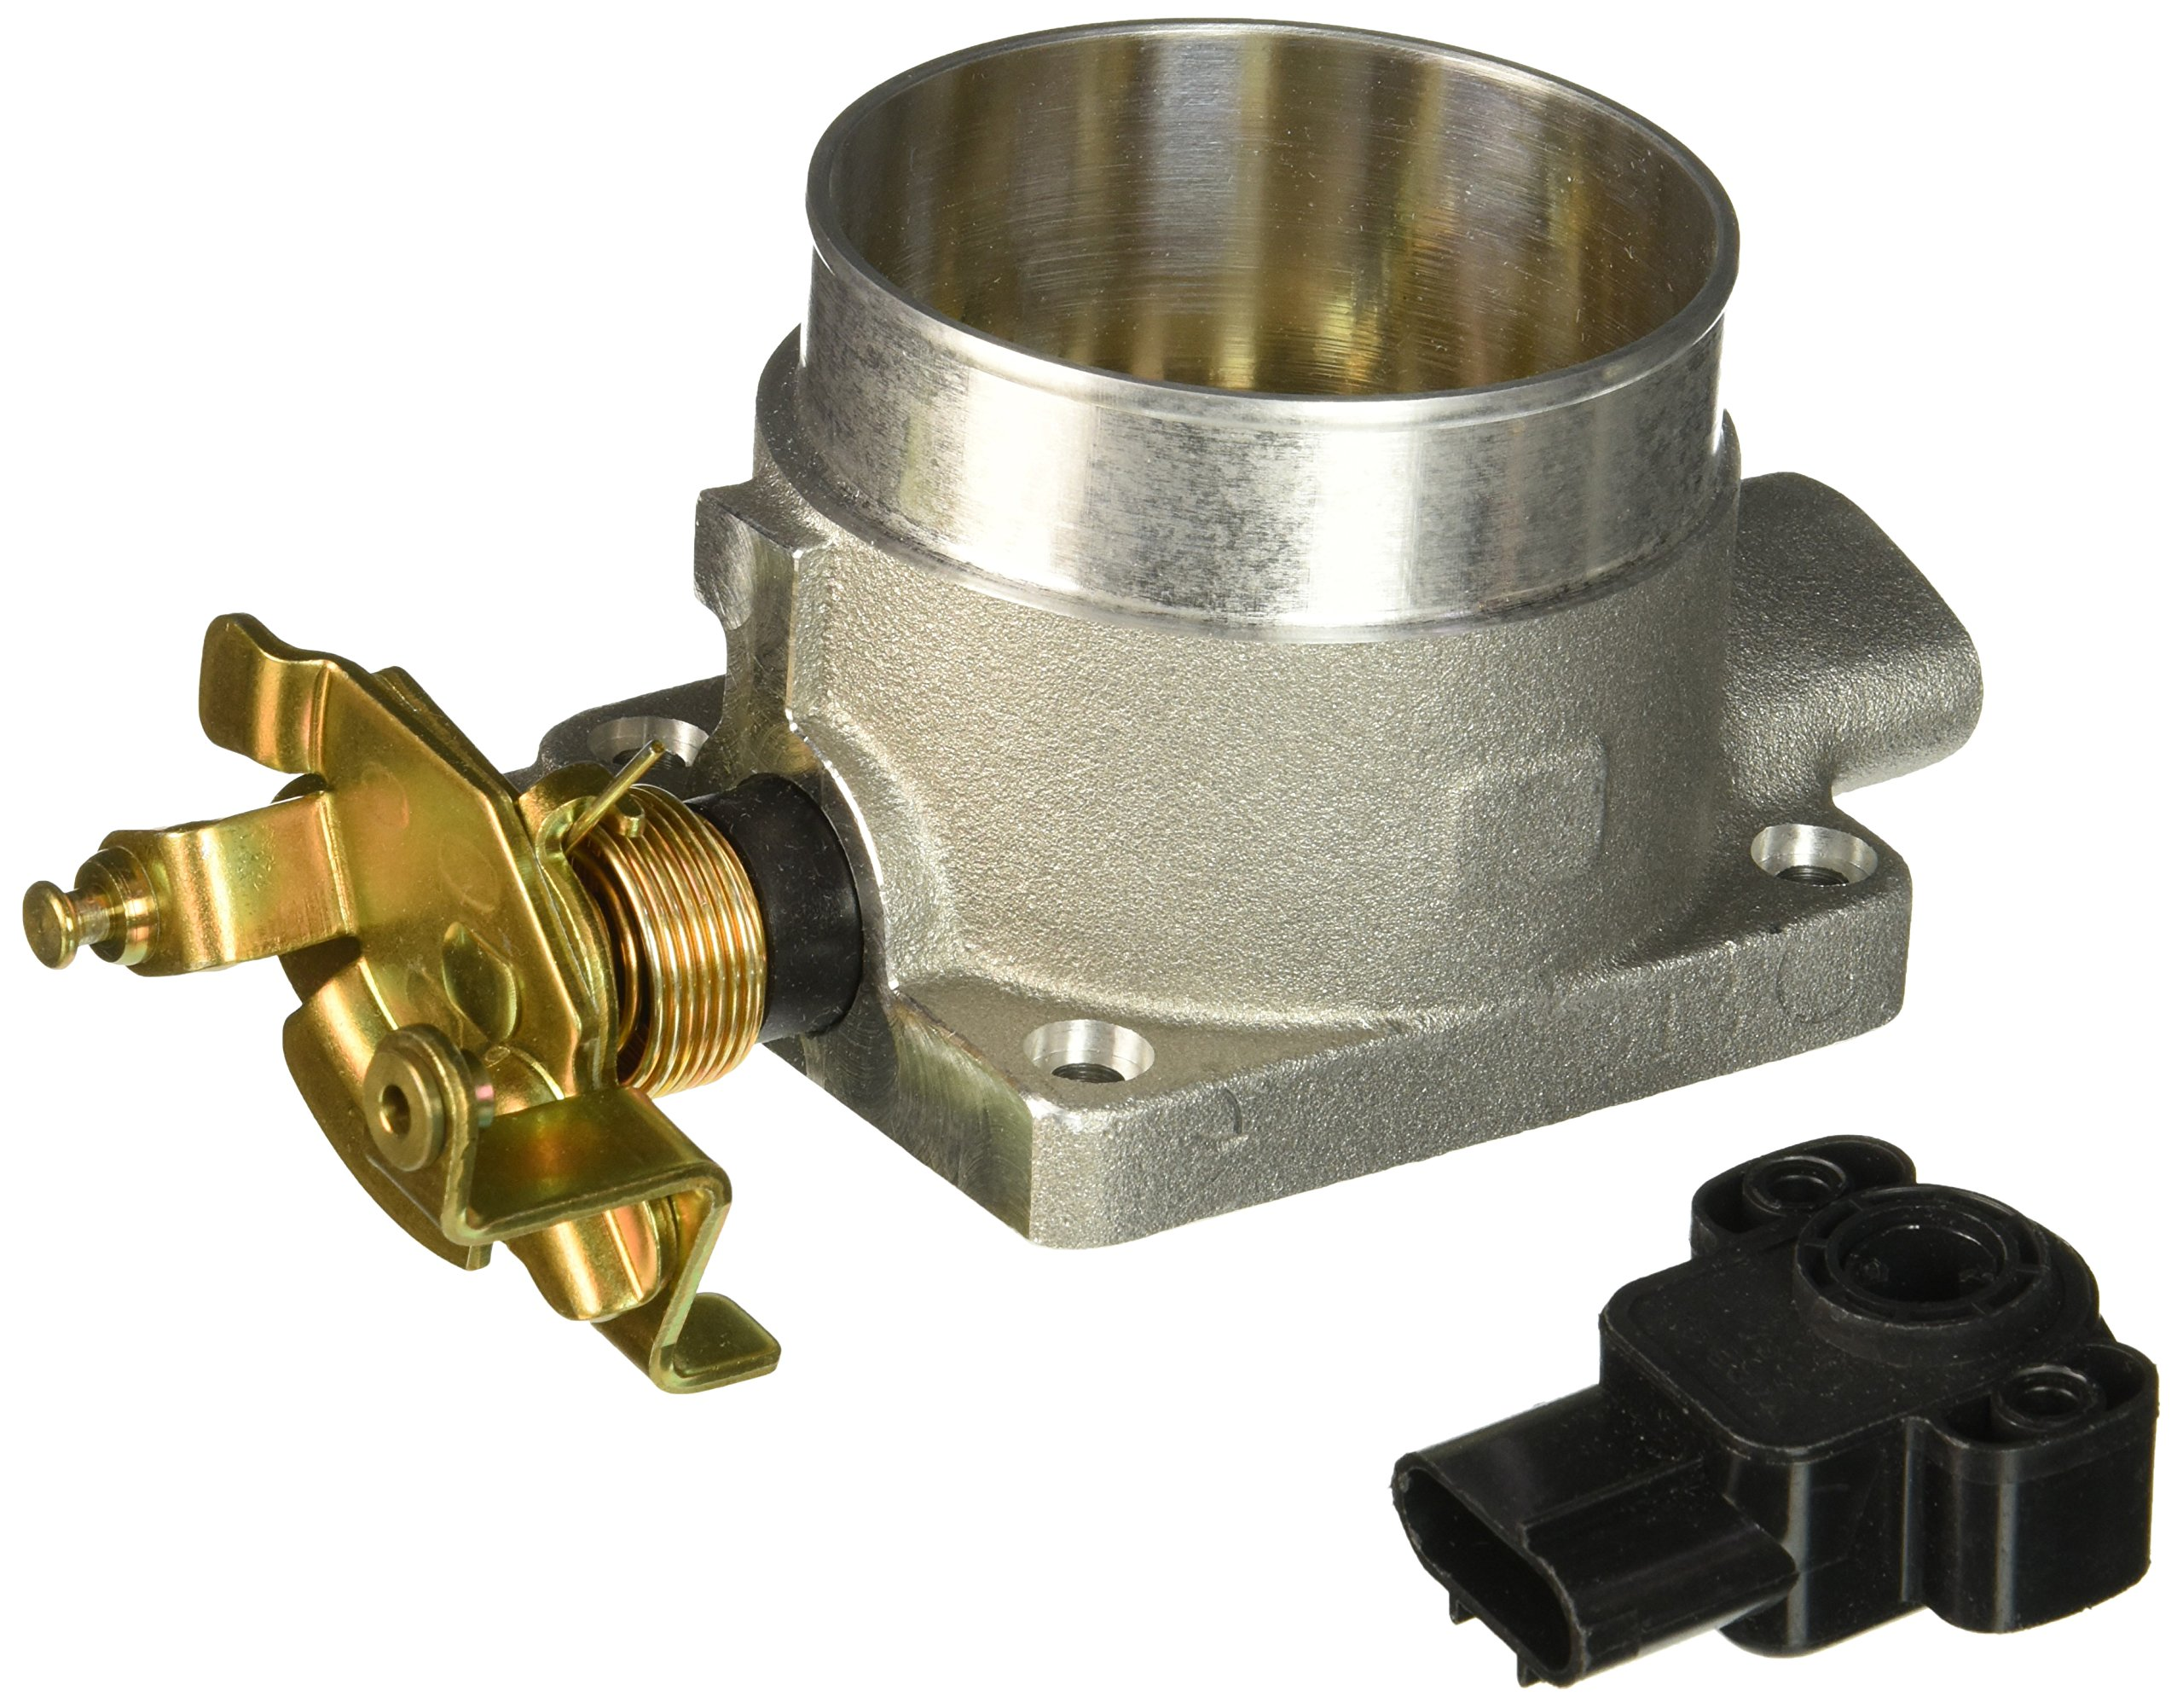 BBK 1703 75mm Throttle Body - High Flow Power Plus Series for Ford 4.6L-2V/4.6/5.4L F150/Expedition by BBK Performance